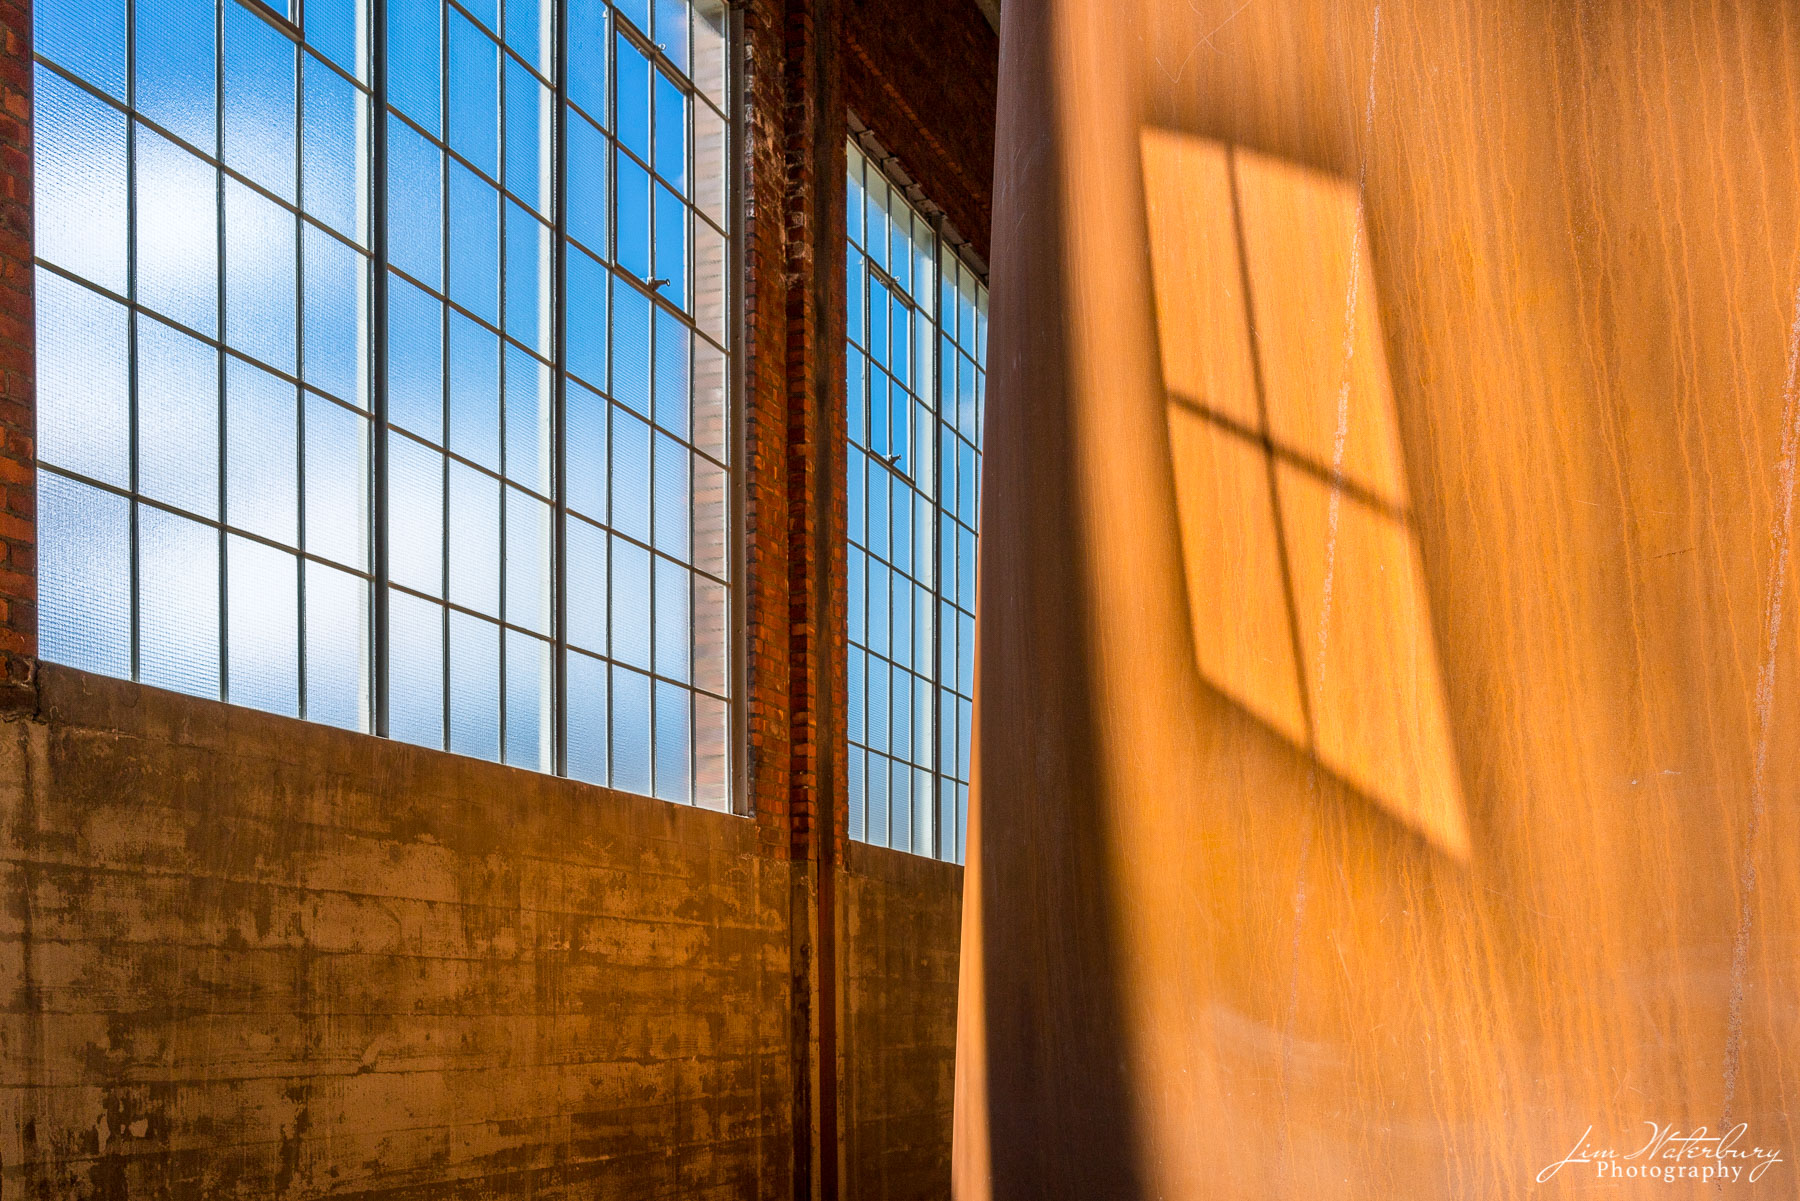 Beacon, Dia, New York, art, windows abstract, photo